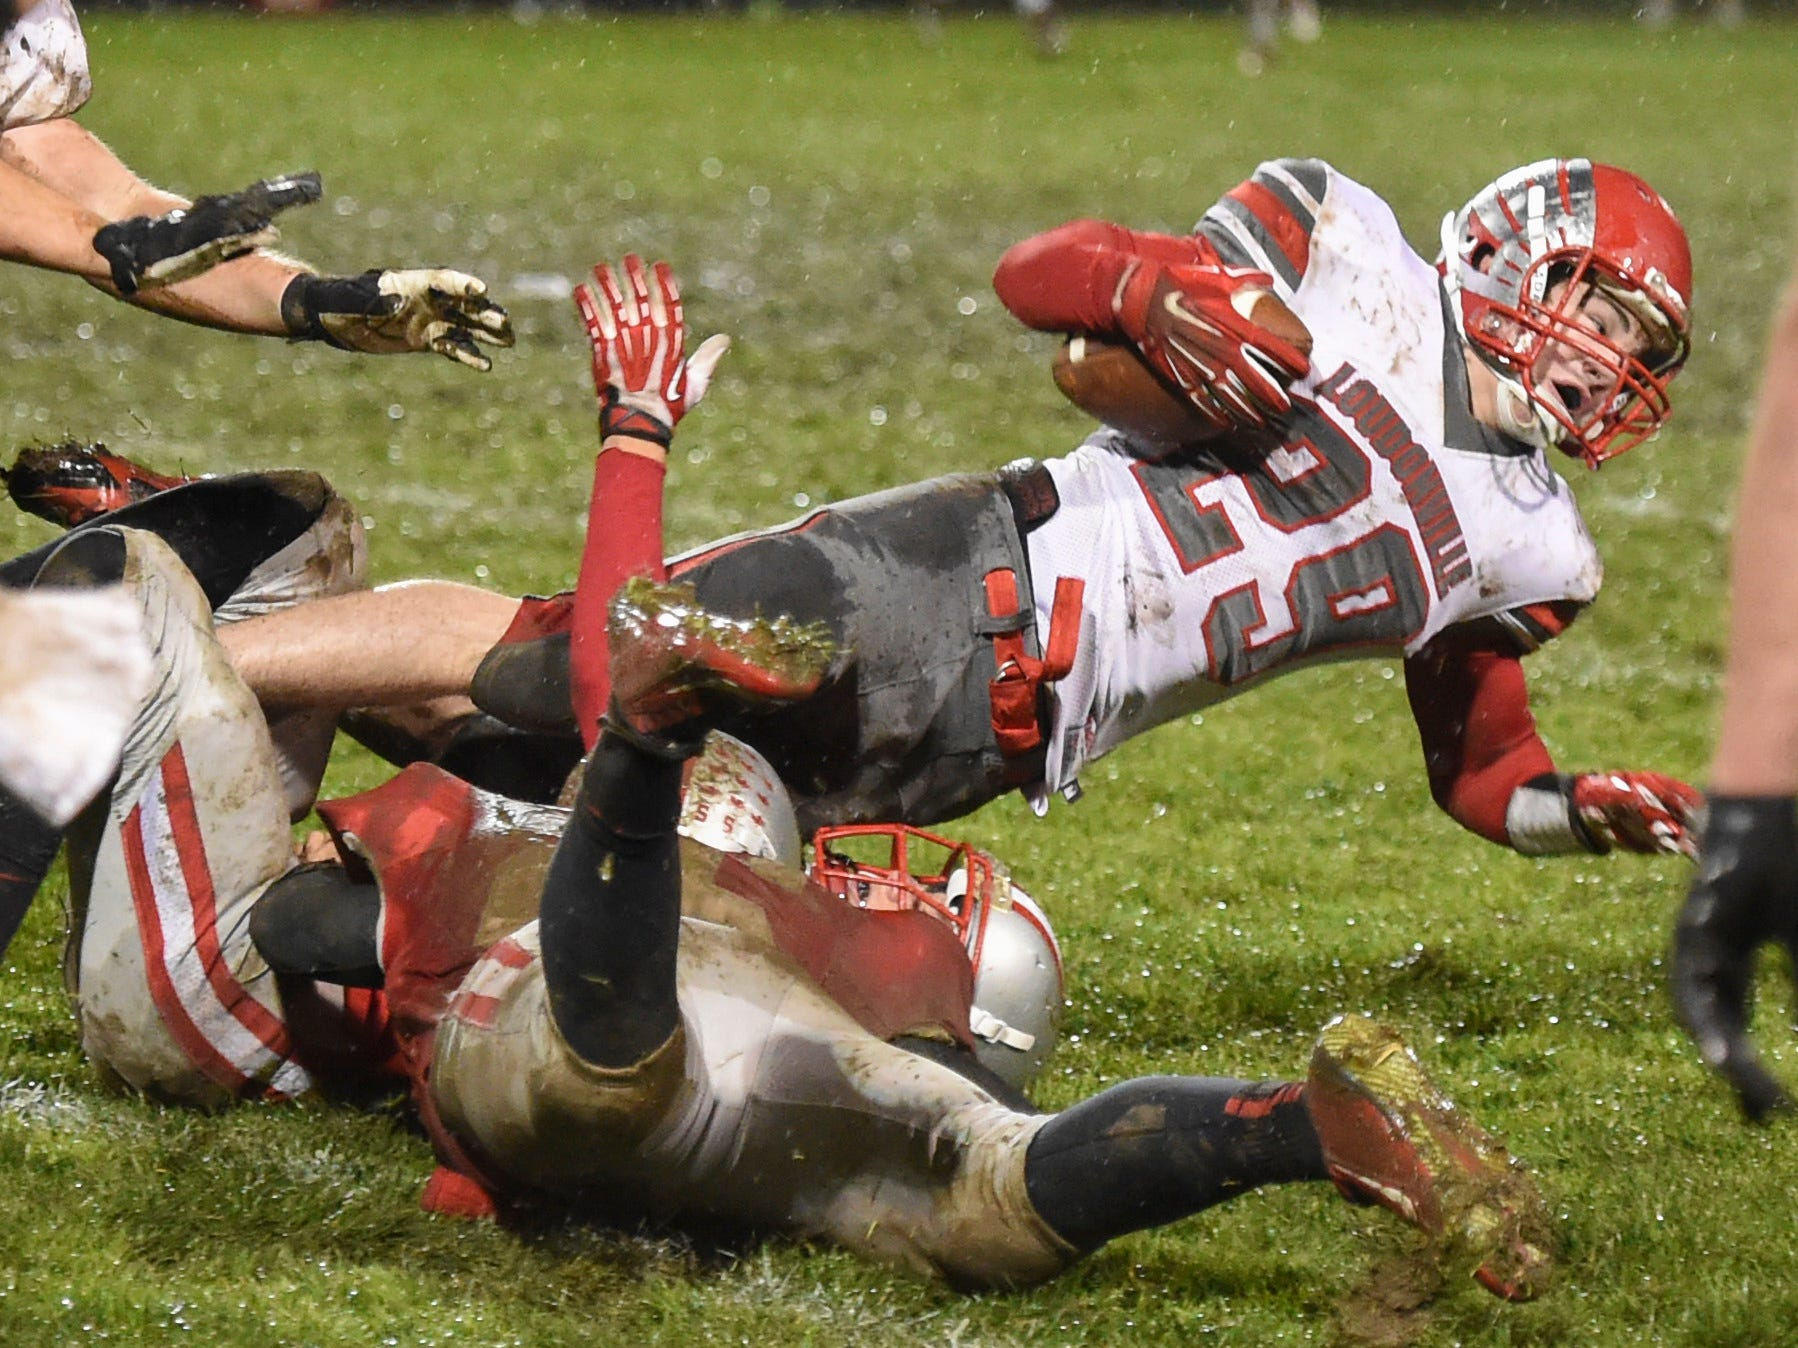 """Loudonville""""s Jordan Wright goes down after gaining some tough yardage against Shelby in Friday night action at Shelby."""